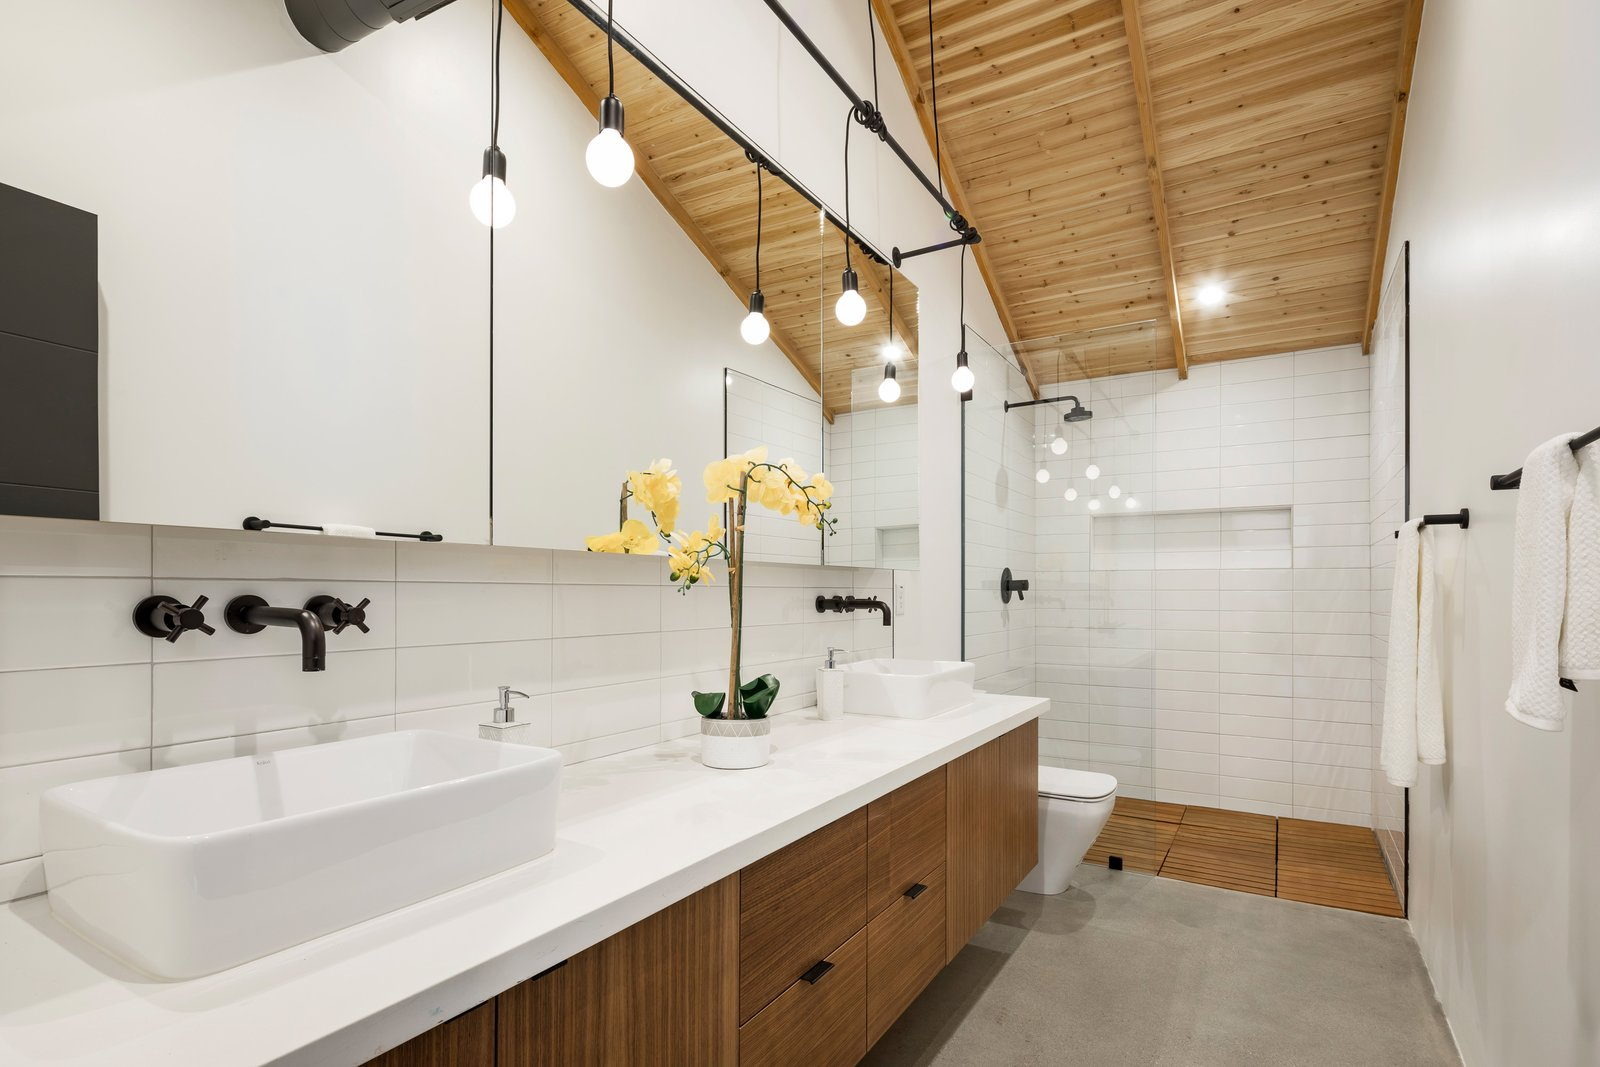 Bath Room, Ceiling Lighting, Vessel Sink, Concrete Floor, Enclosed Shower, Engineered Quartz Counter, Pendant Lighting, One Piece Toilet, and Recessed Lighting  Photo 5 of 13 in In Arizona, a Modern Cube and Tumbledown 1930s Shack Make an Unlikely Couple